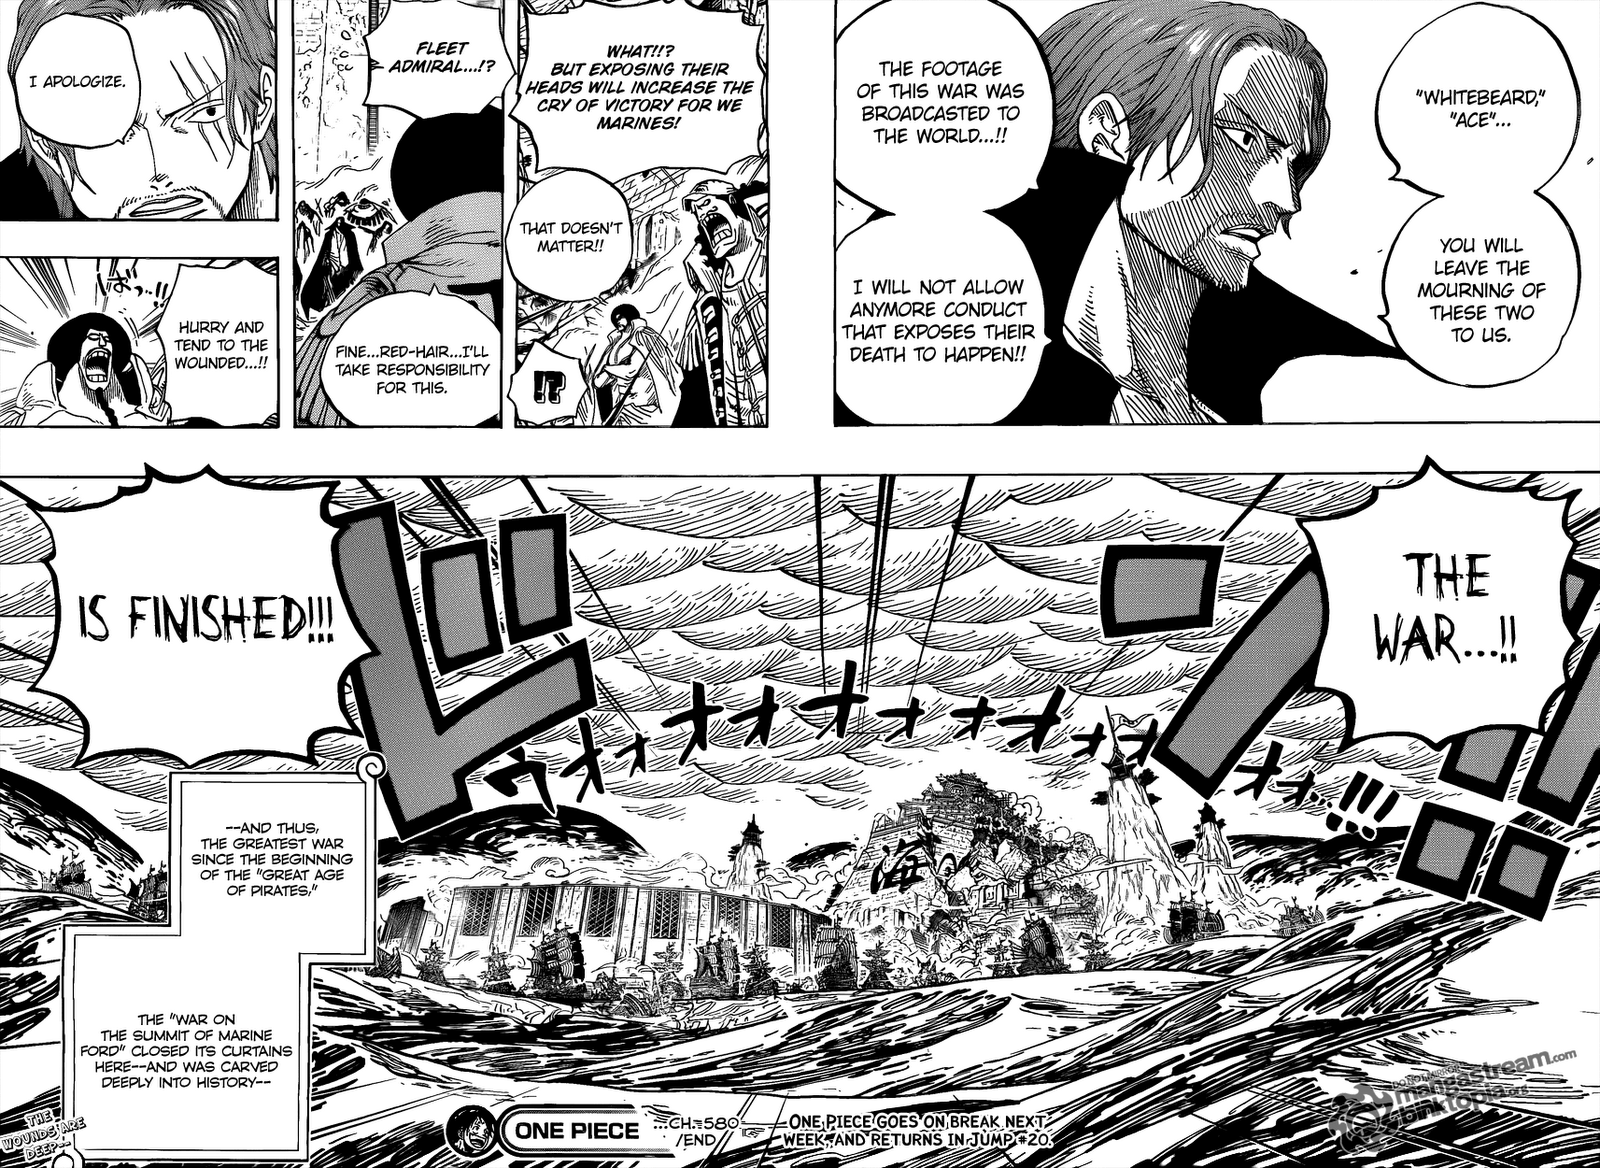 Read One Piece 580 Online | 11 - Press F5 to reload this image